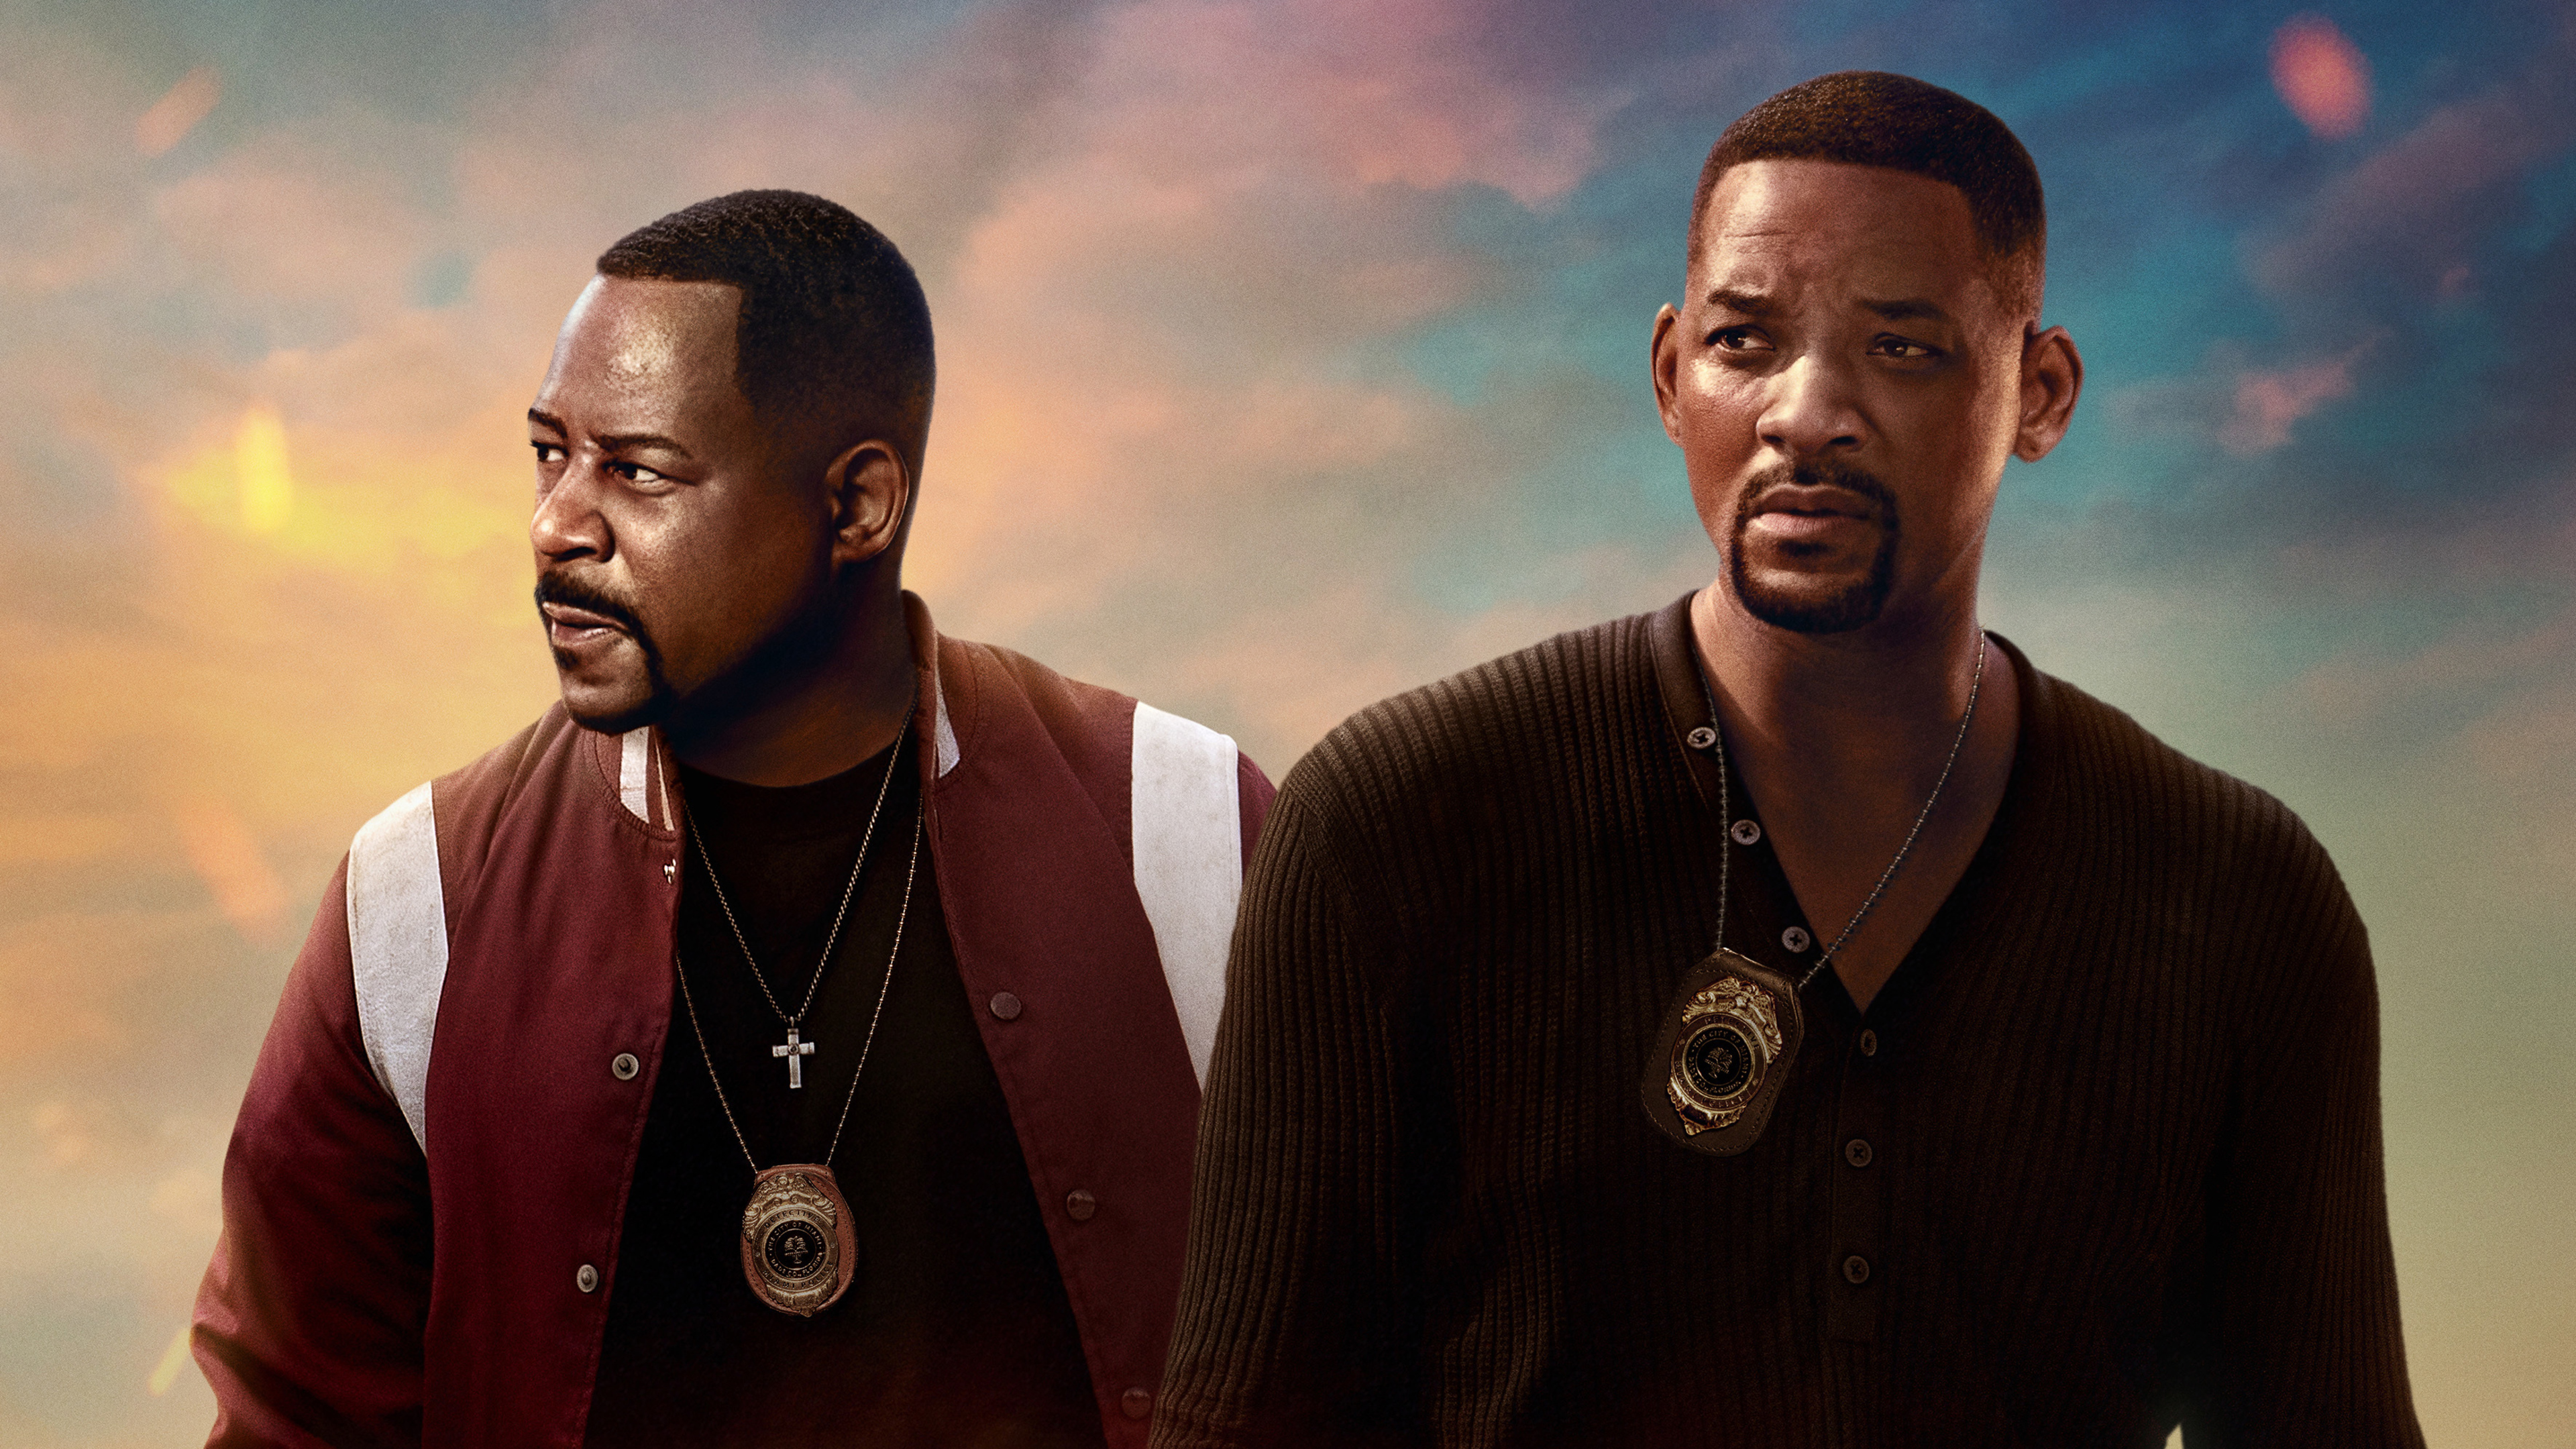 3840x2160 Bad Boys For Life 2020 Movie 4k HD 4k Wallpapers. Images. Backgrounds. Photos and Pictures